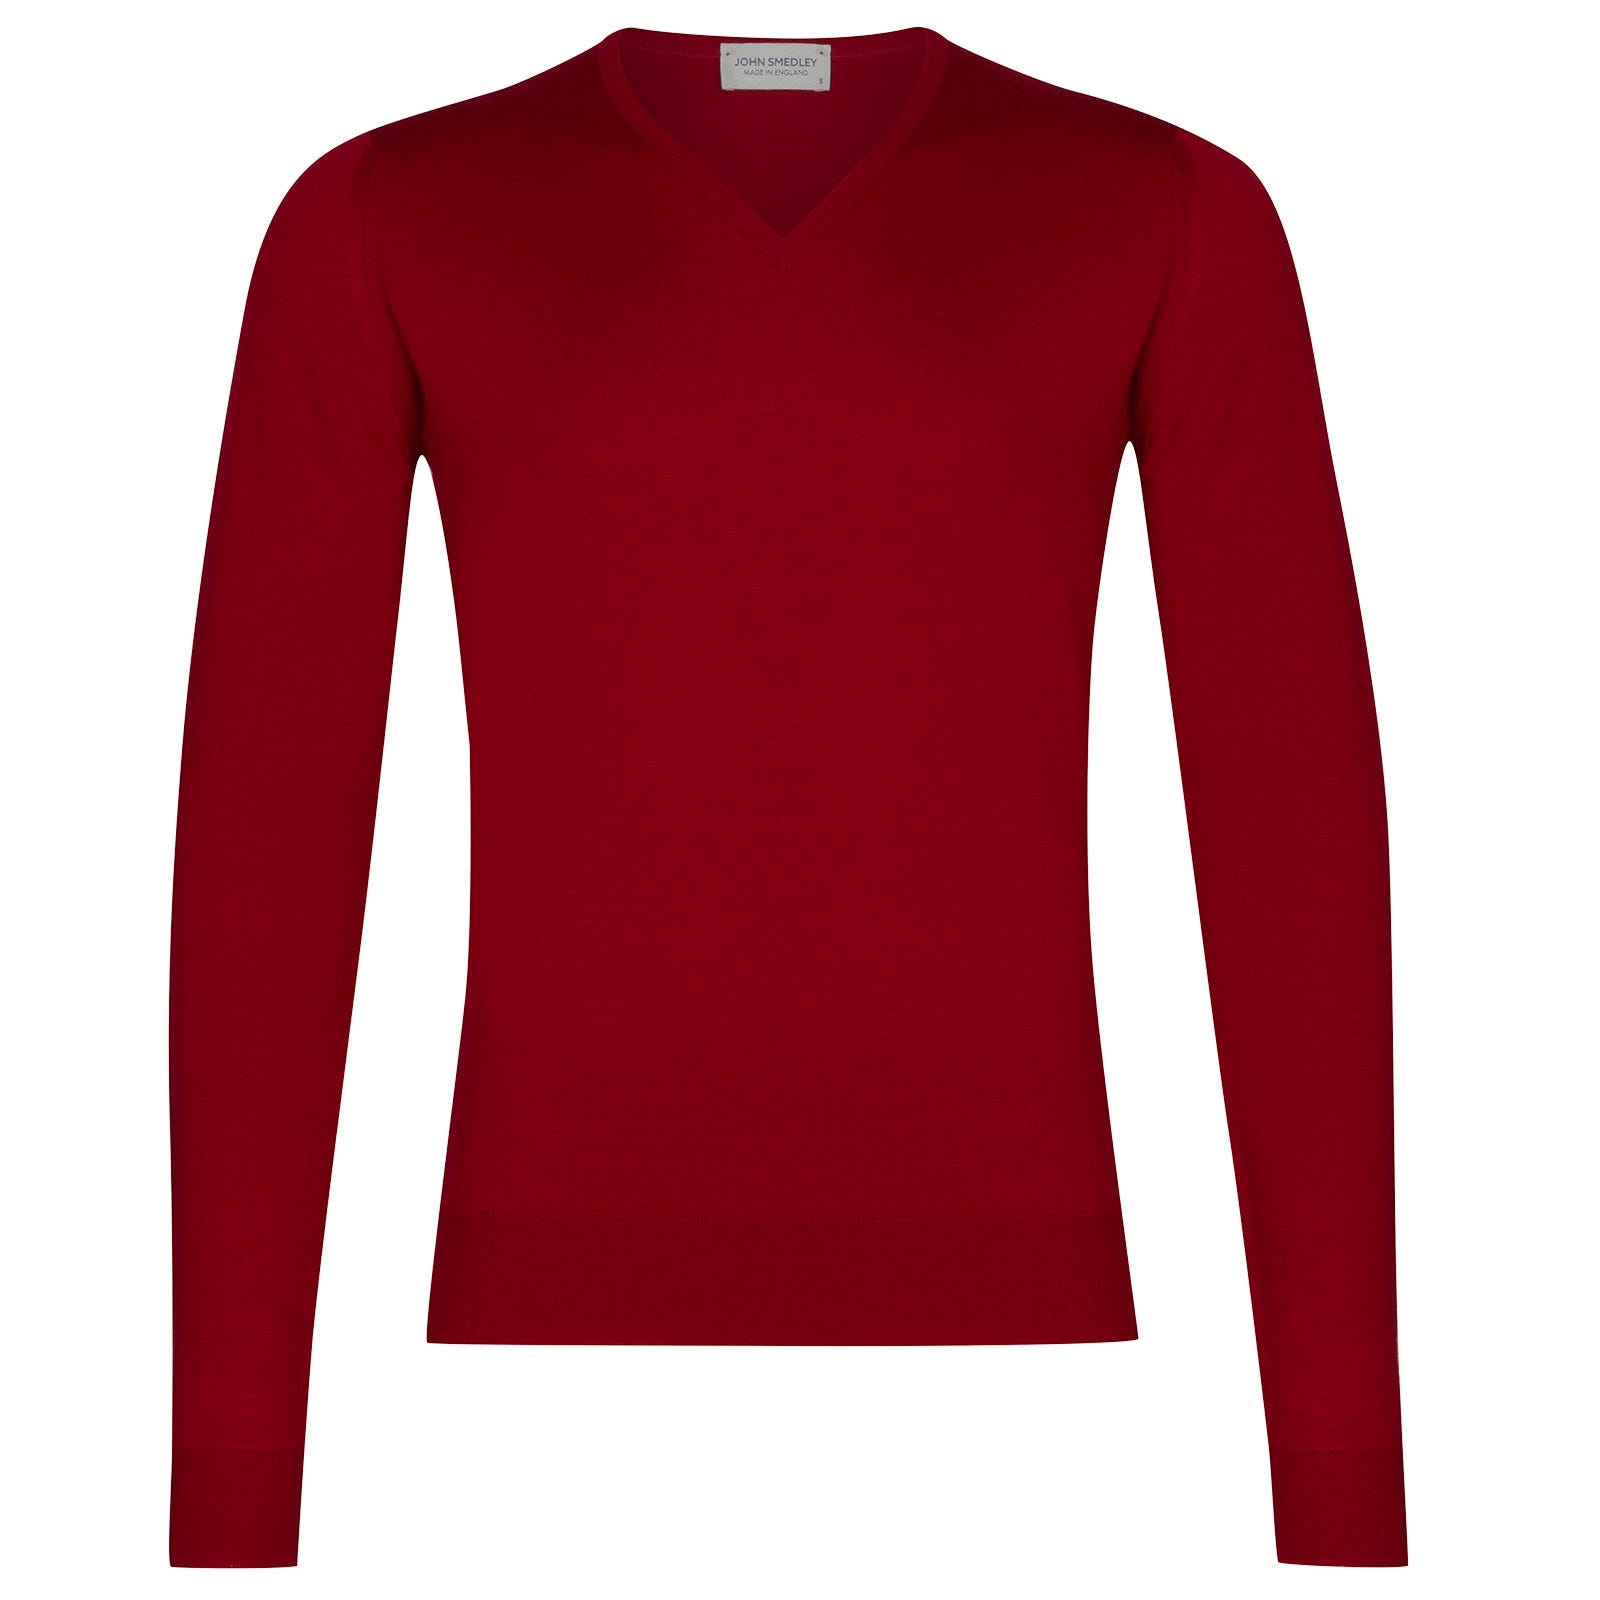 John Smedley Blenheim Merino Wool Pullover in Crimson Forest-XXL